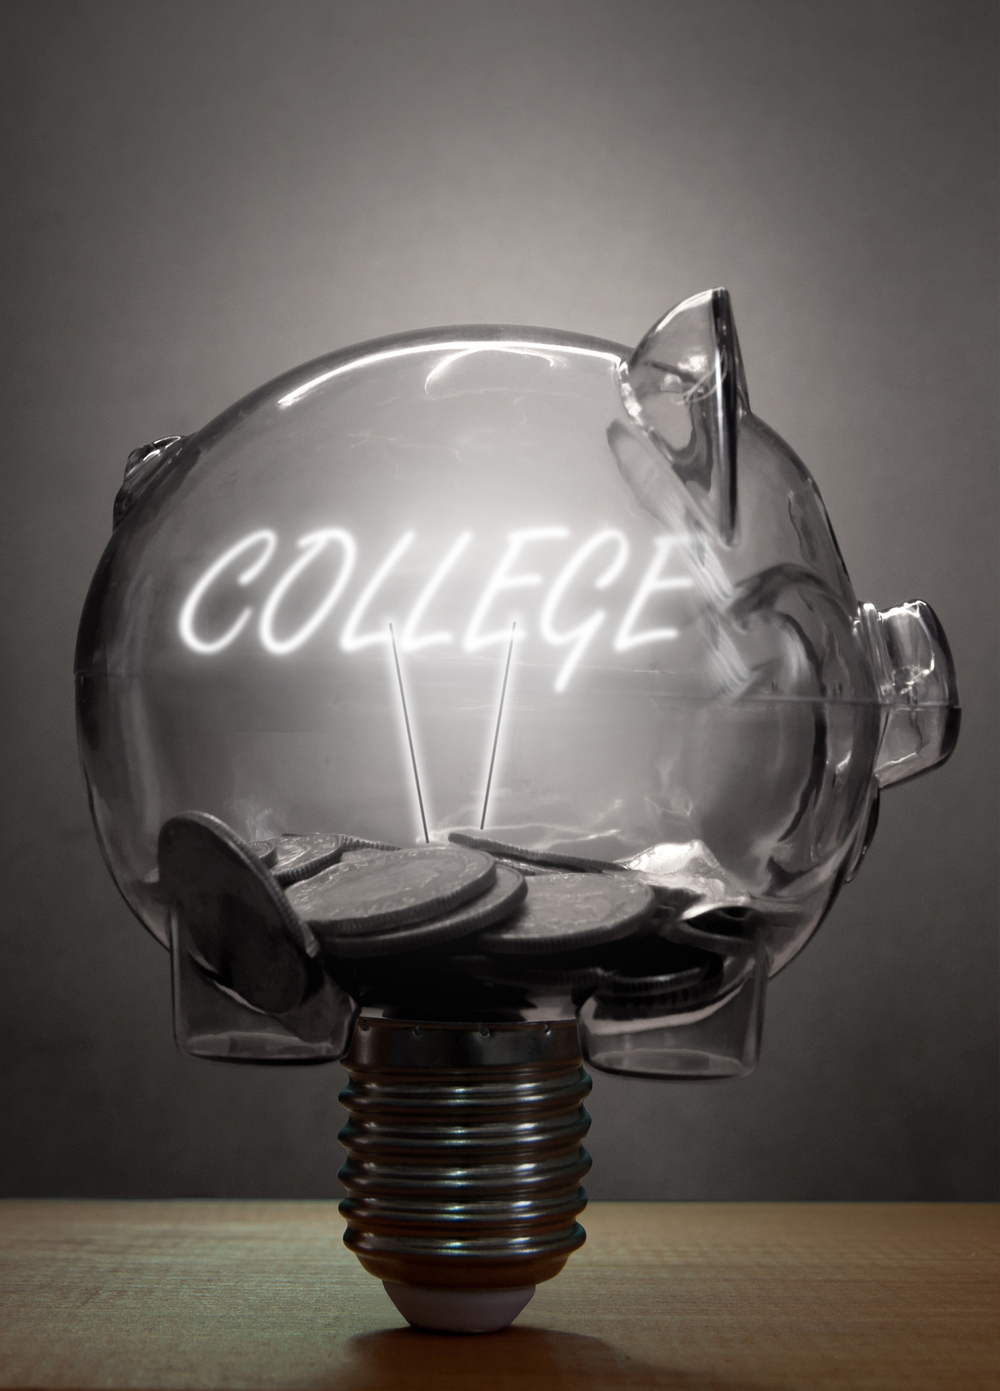 college planning investing goals everett wealth solutions inc